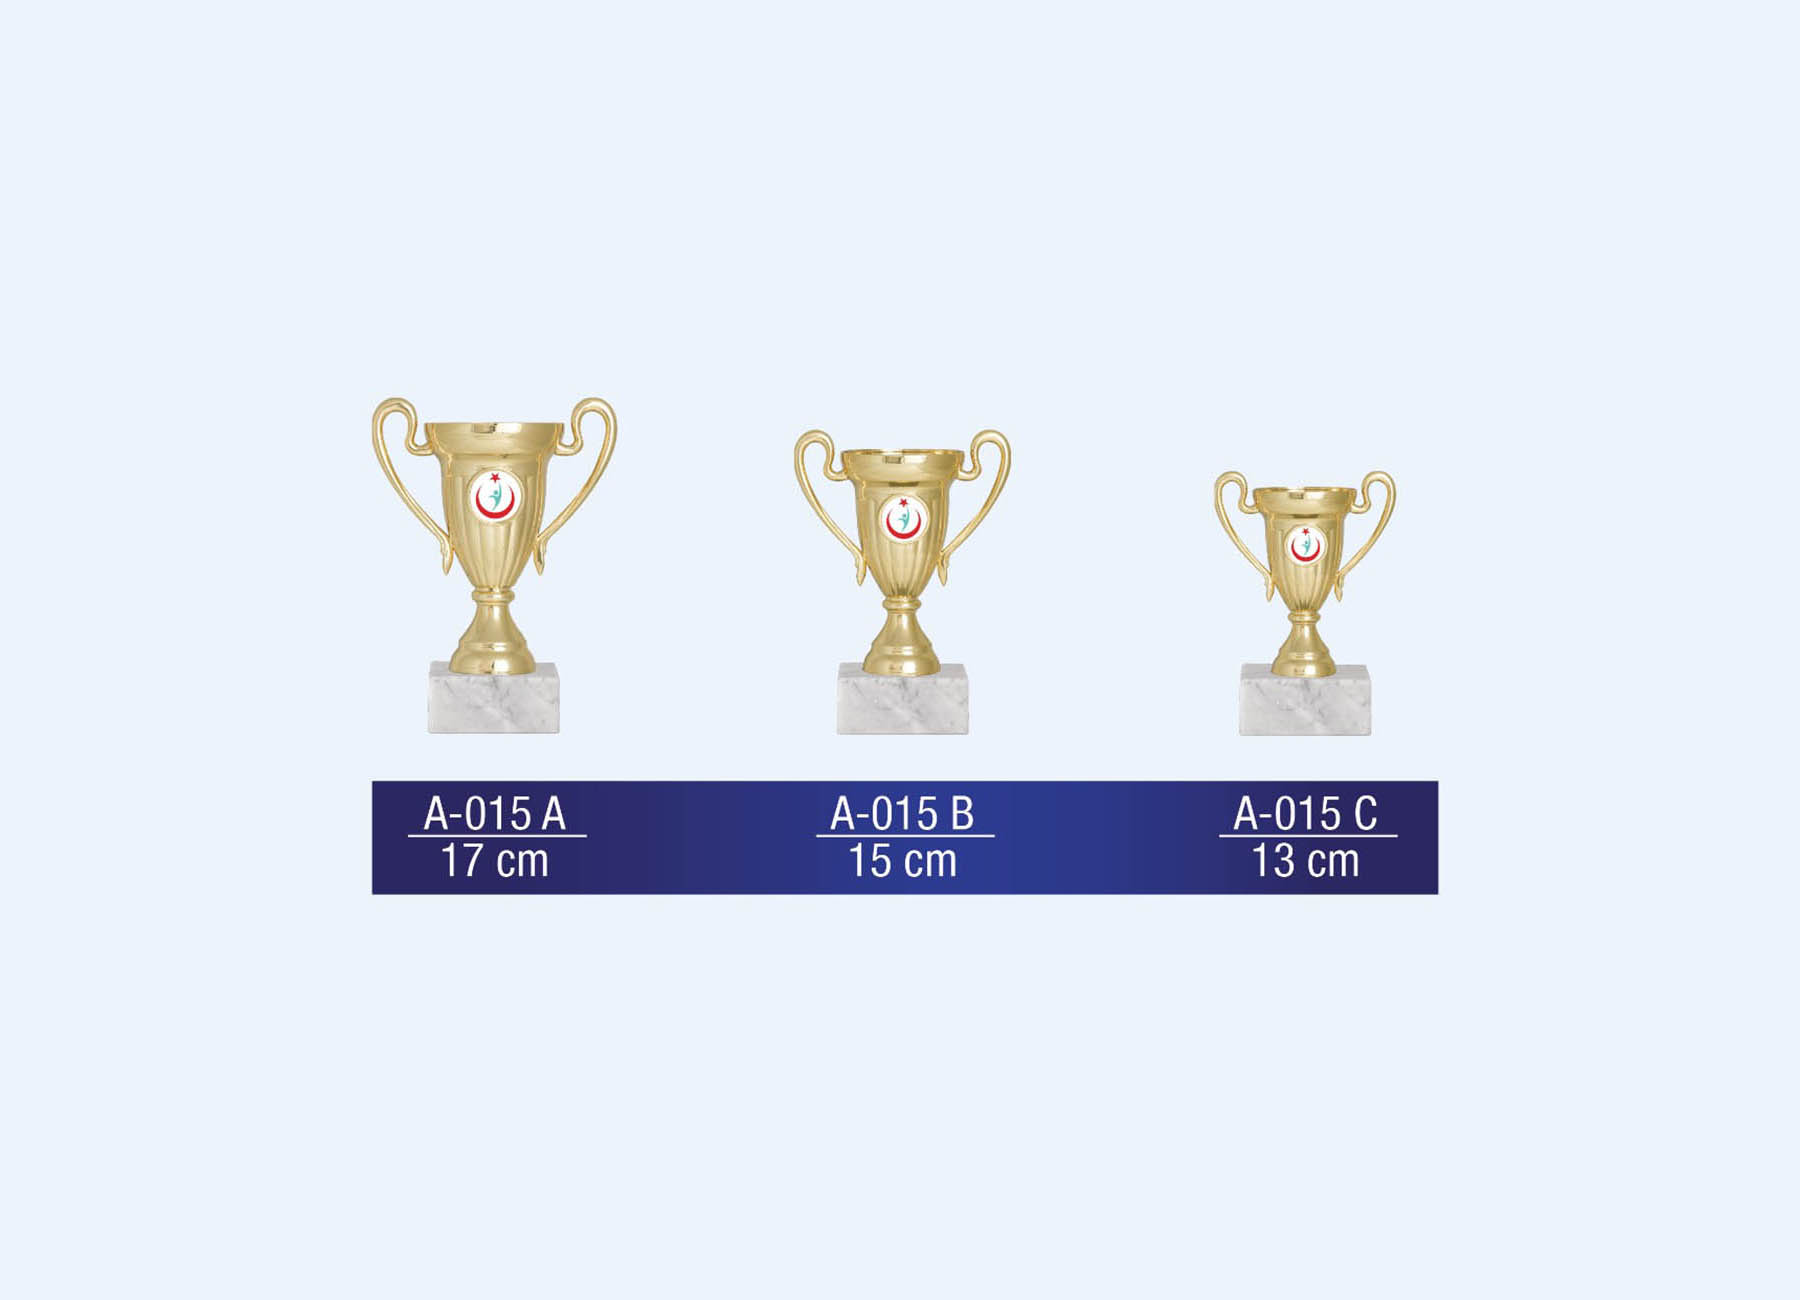 A-015 General Cups